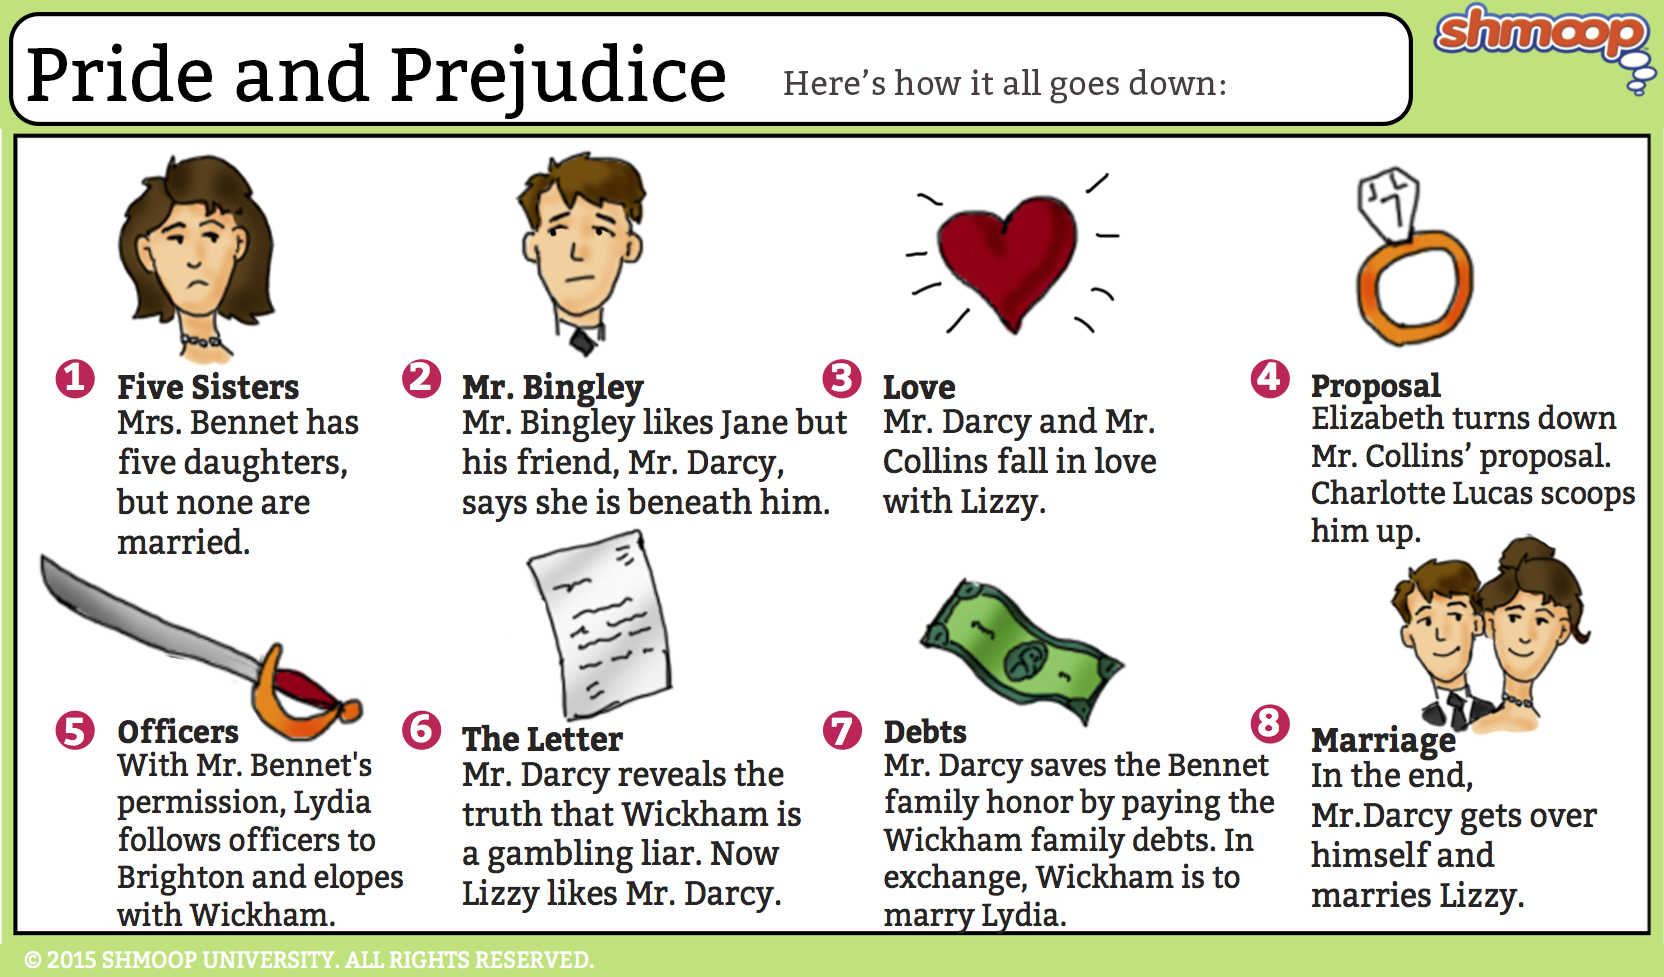 pride and prejudice character analysis darcy Free essay: character analysis: mr darcy introduced to jane austen's pride and  prejudice as a tall, handsome, self-absorbed aristocrat, darcy experiences a.